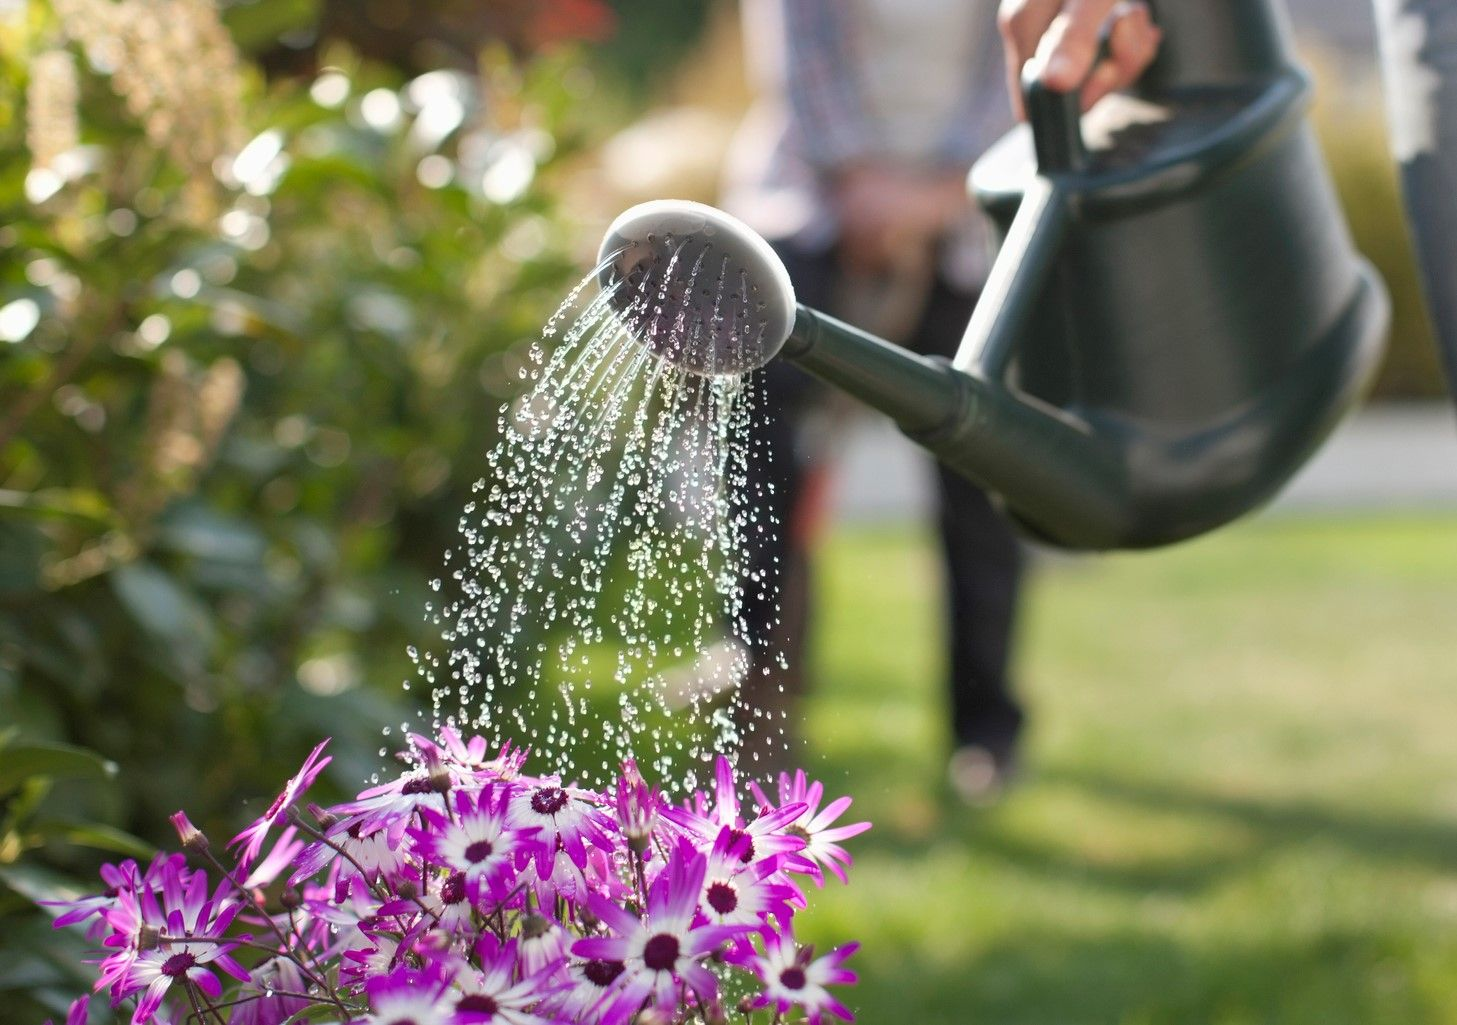 Watering can and sprinkler buying guide